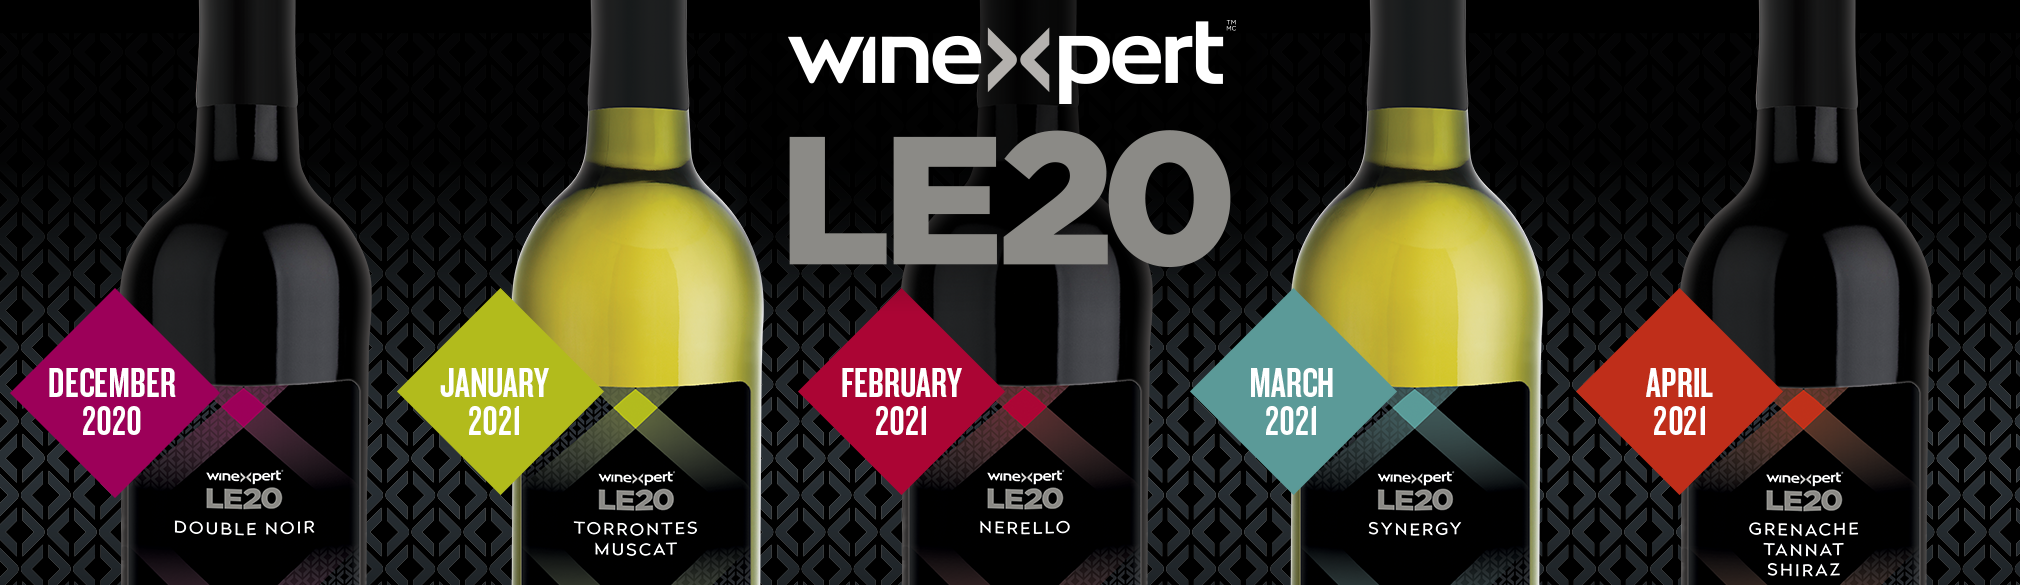 Winexpert LE20 Limited Release Wines now available for pre-order